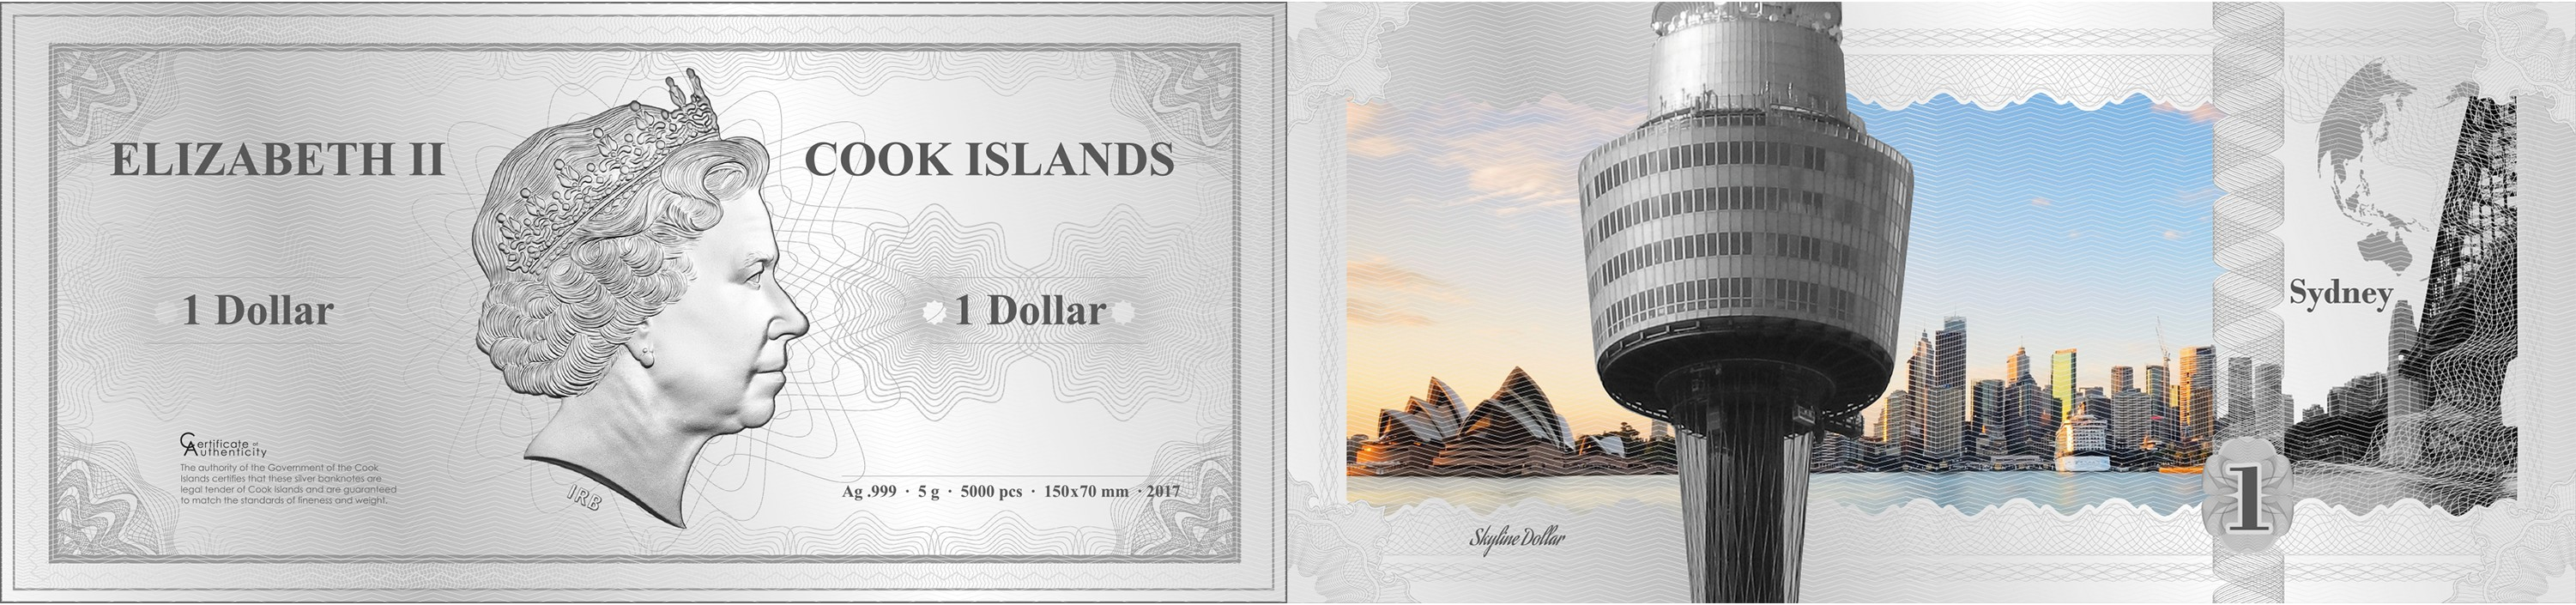 cook isl 2017 skyline dollar sydney